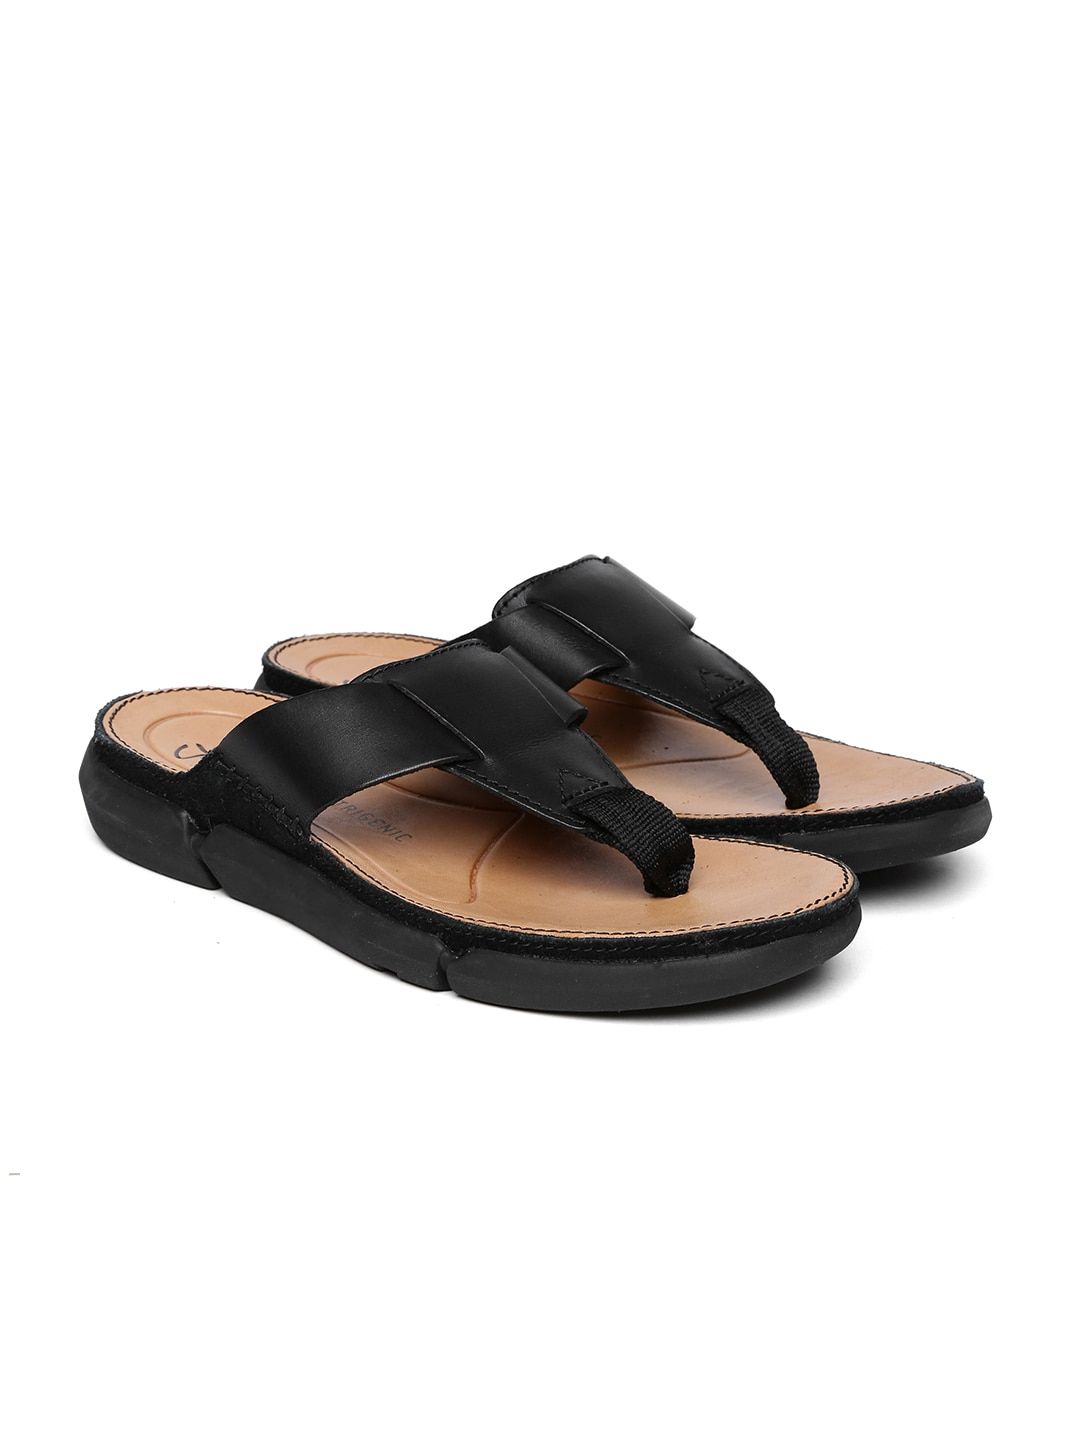 50c6beaee Clarks Sandal For Men - Buy Clarks Sandal For Men online in India